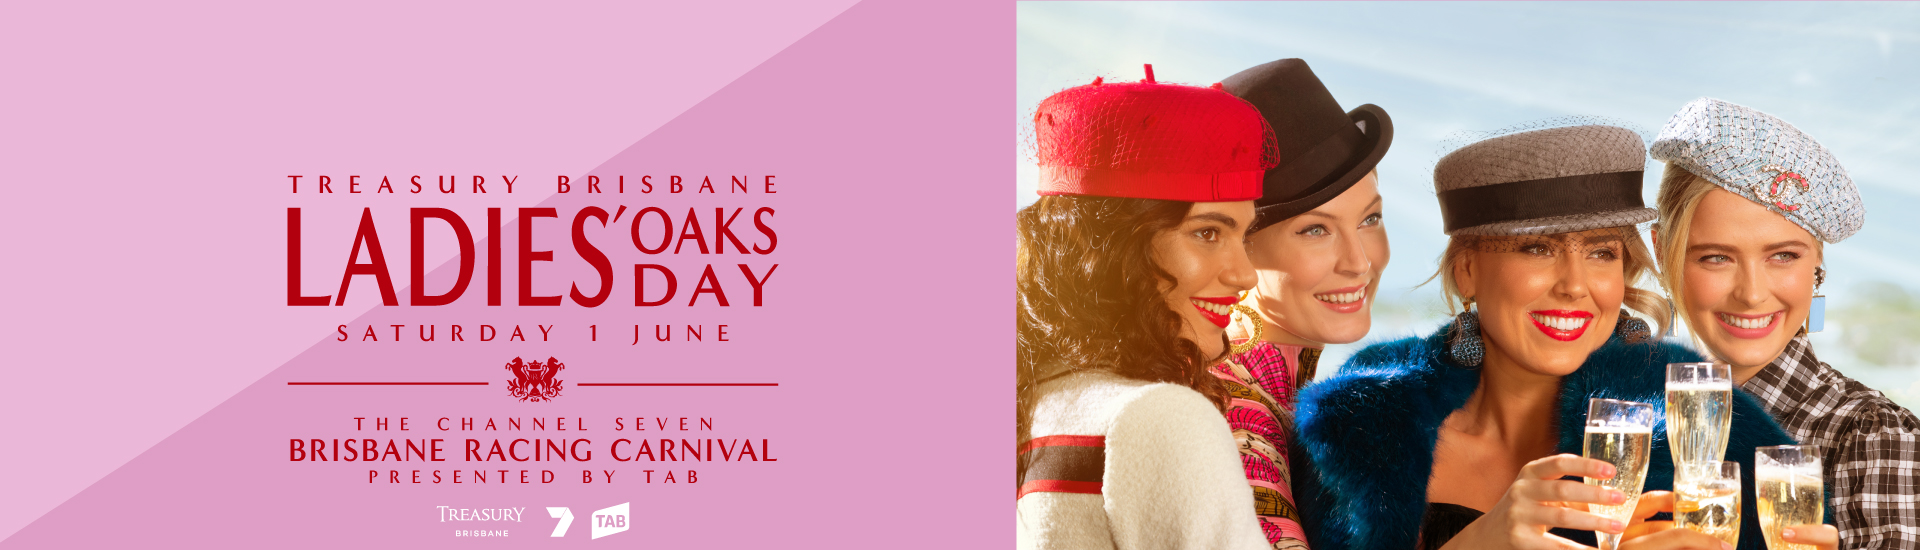 Ladies Oaks Day | Channel Seven Brisbane Racing Carnival | Brisbane Racing Club